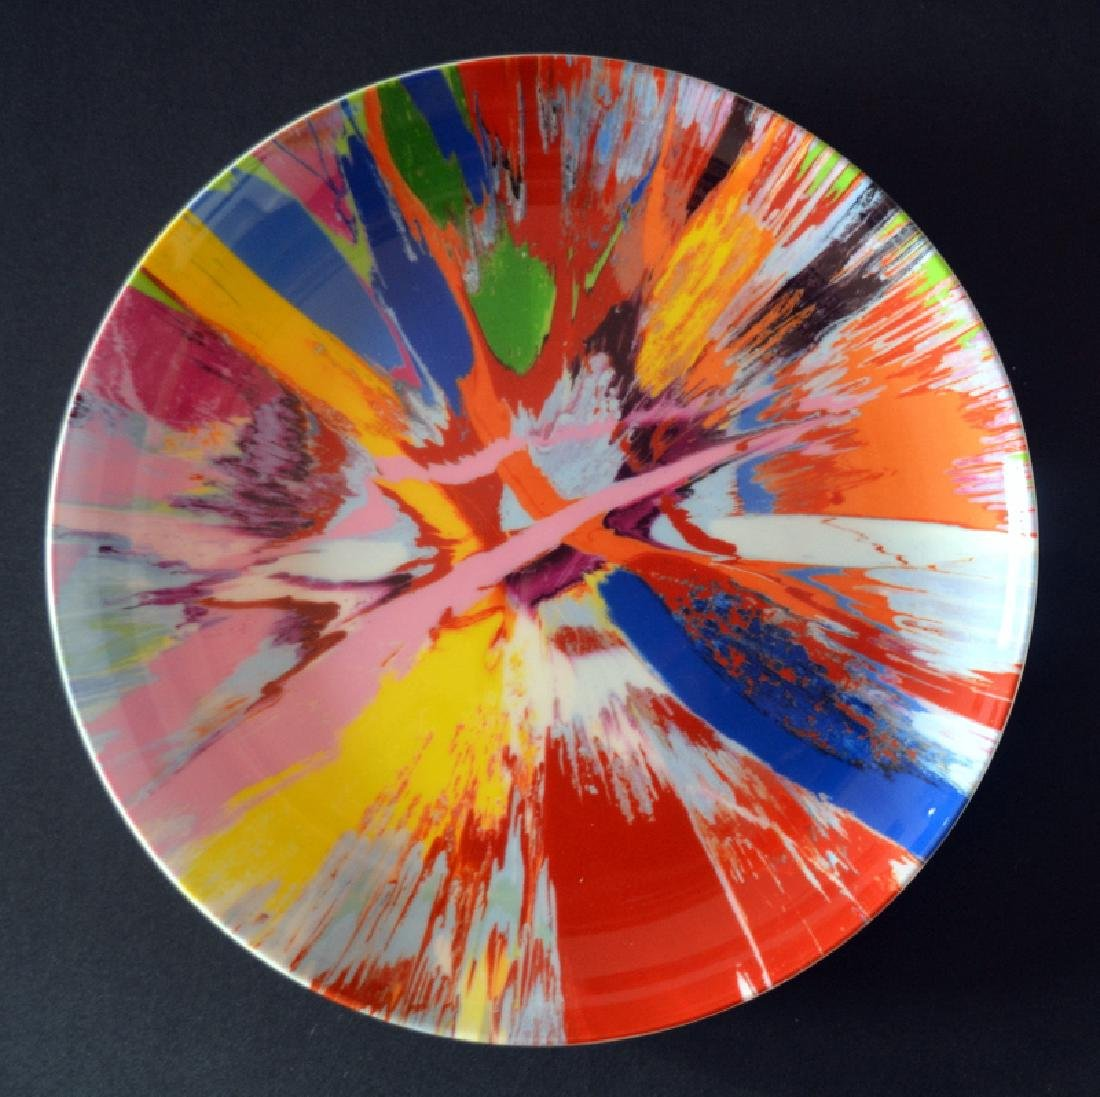 Damien Hirst 2012 Bone China Plate Beautiful ,Limited